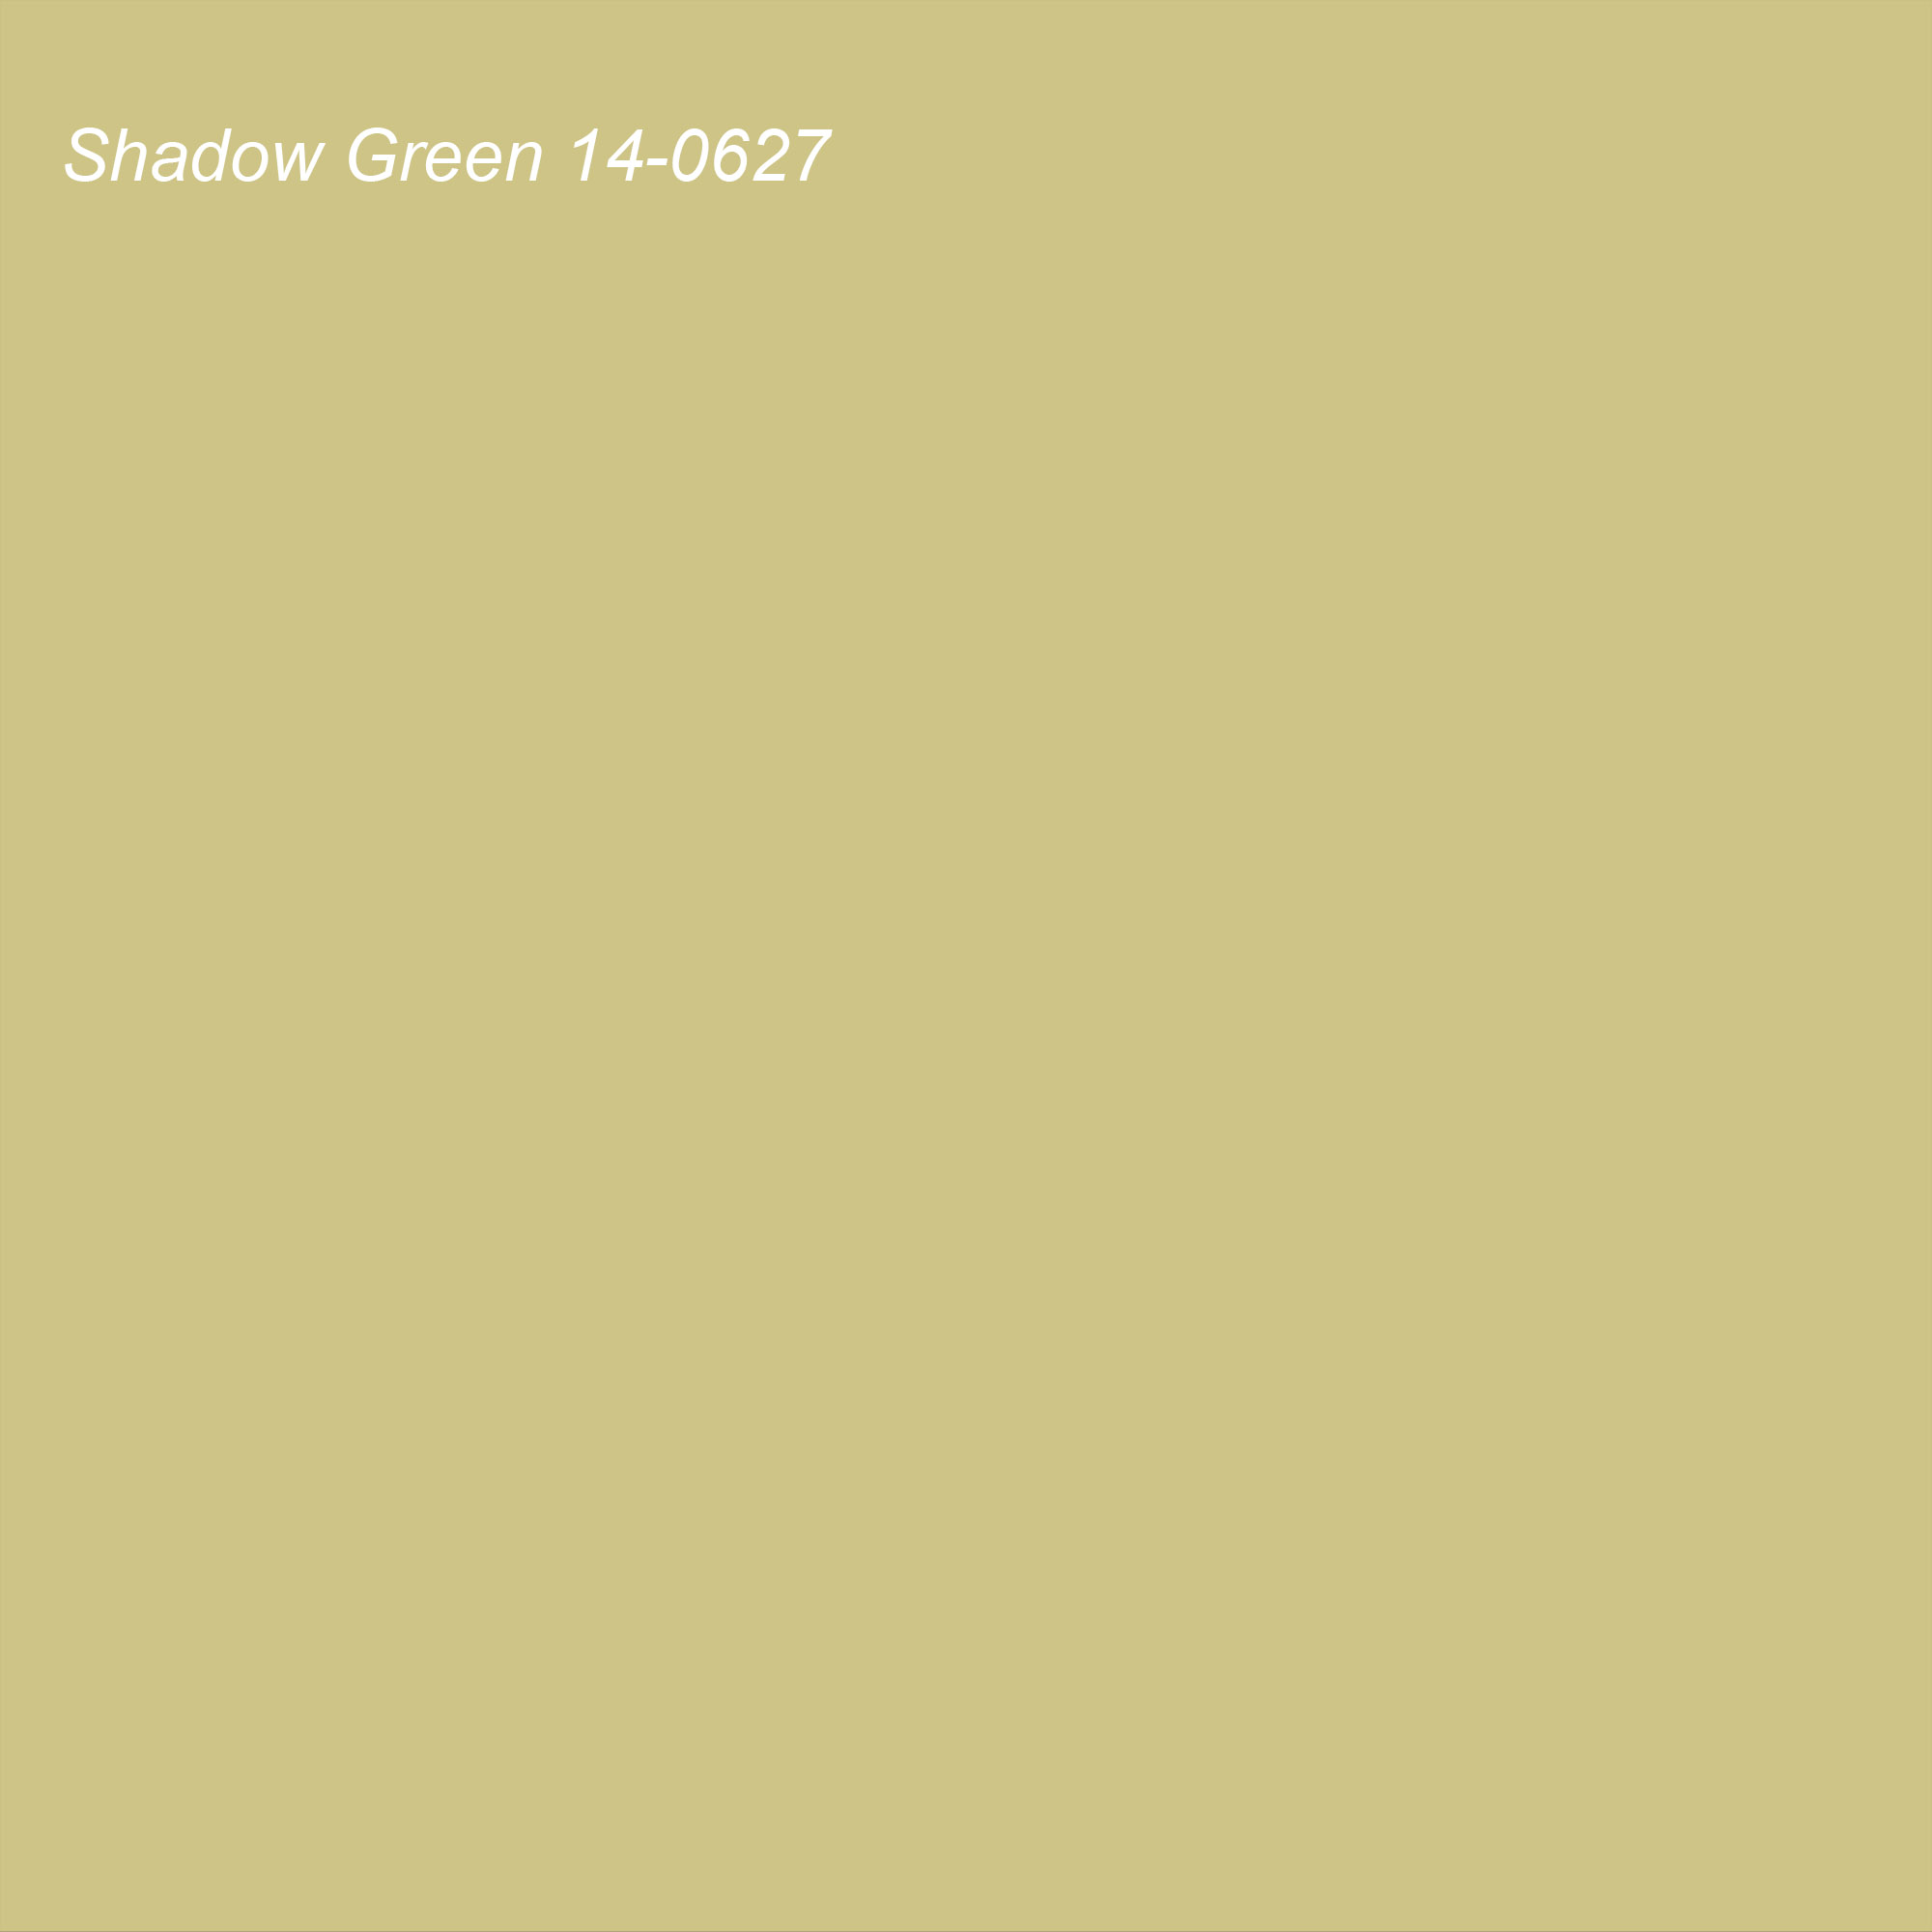 Pantone 2021 Color of the Year Suggested Accent Shade Shadow Green 14-0627